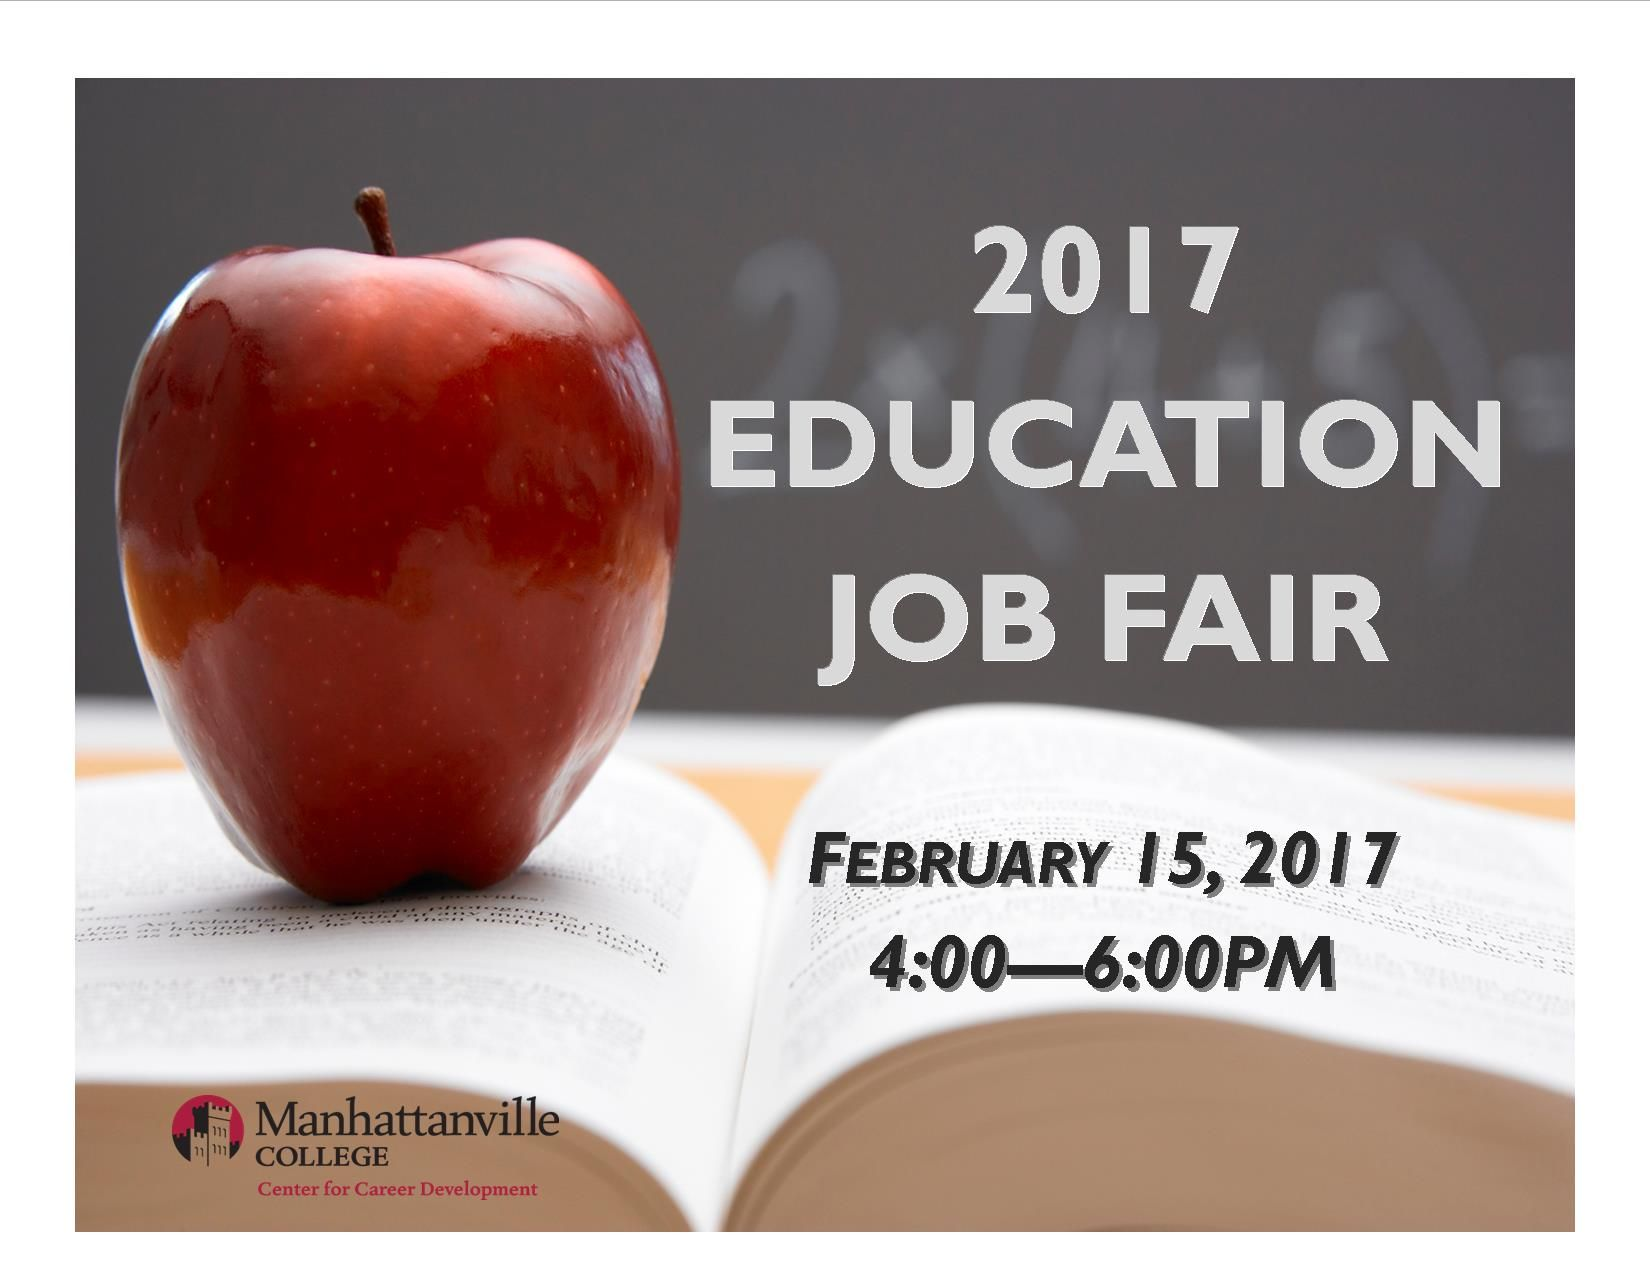 education job fair manhattanville college